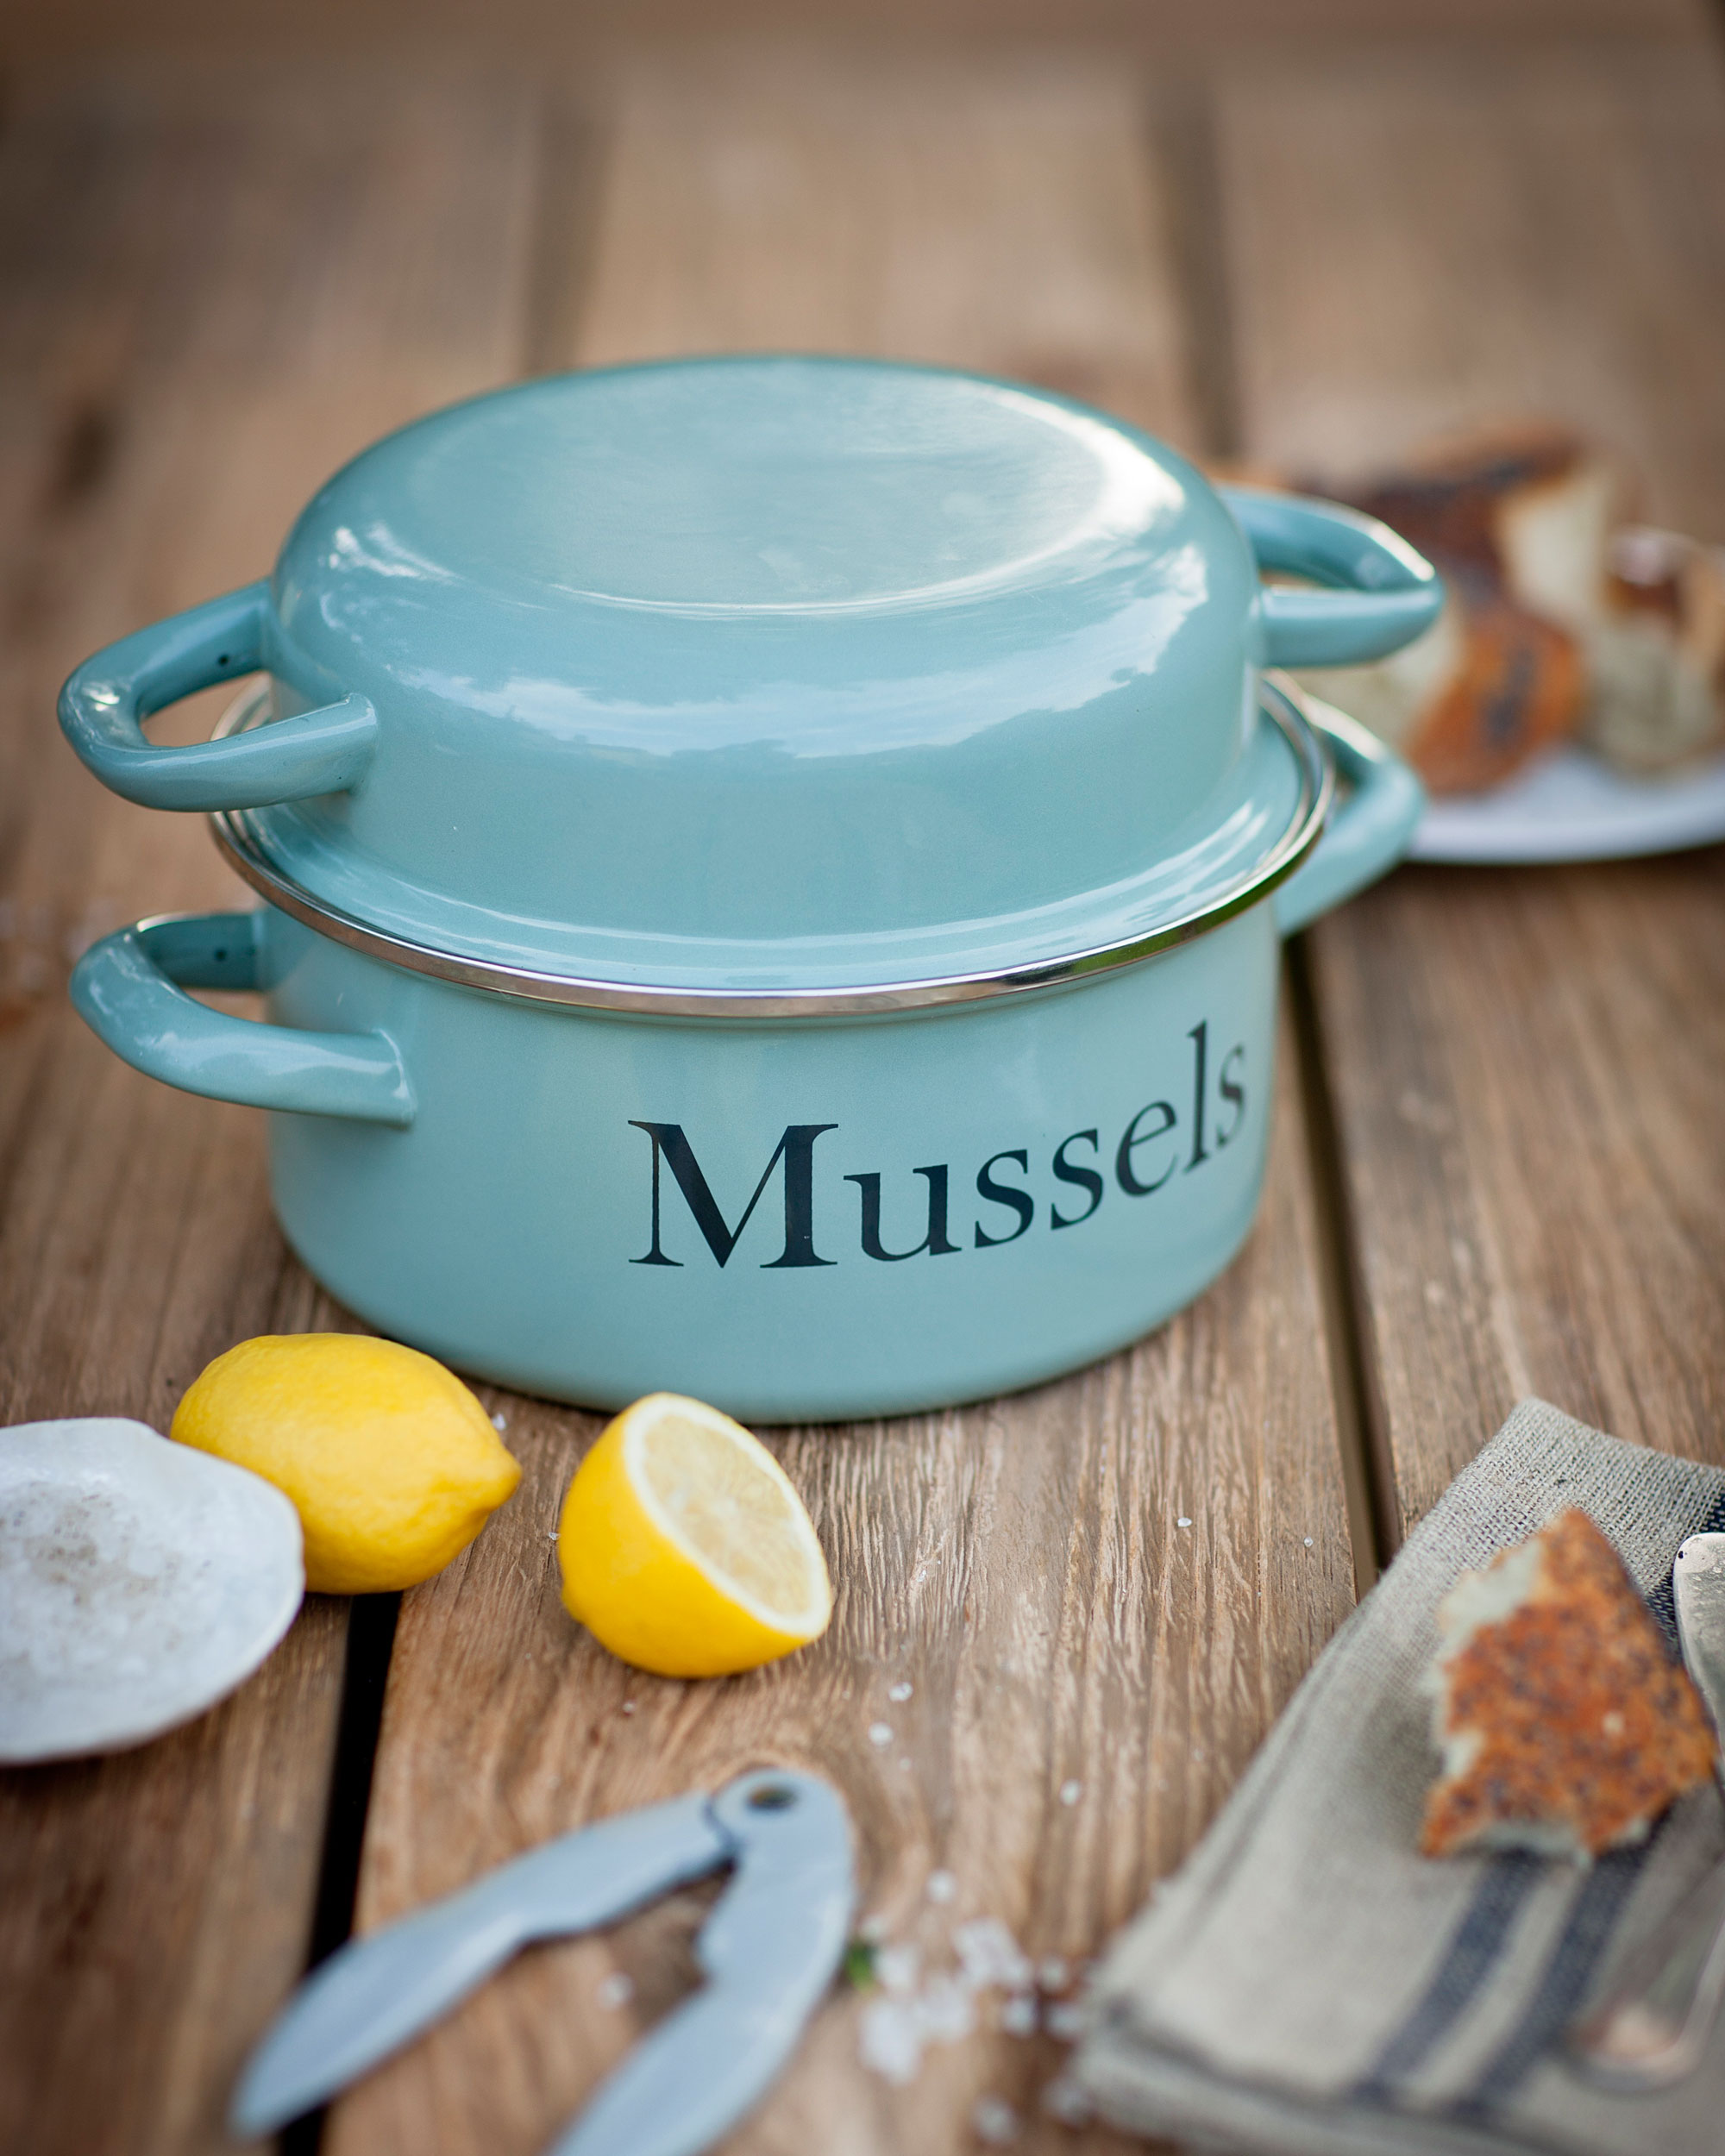 ENAMEL MUSSEL POT - AVAIABLE IN TWO COLO